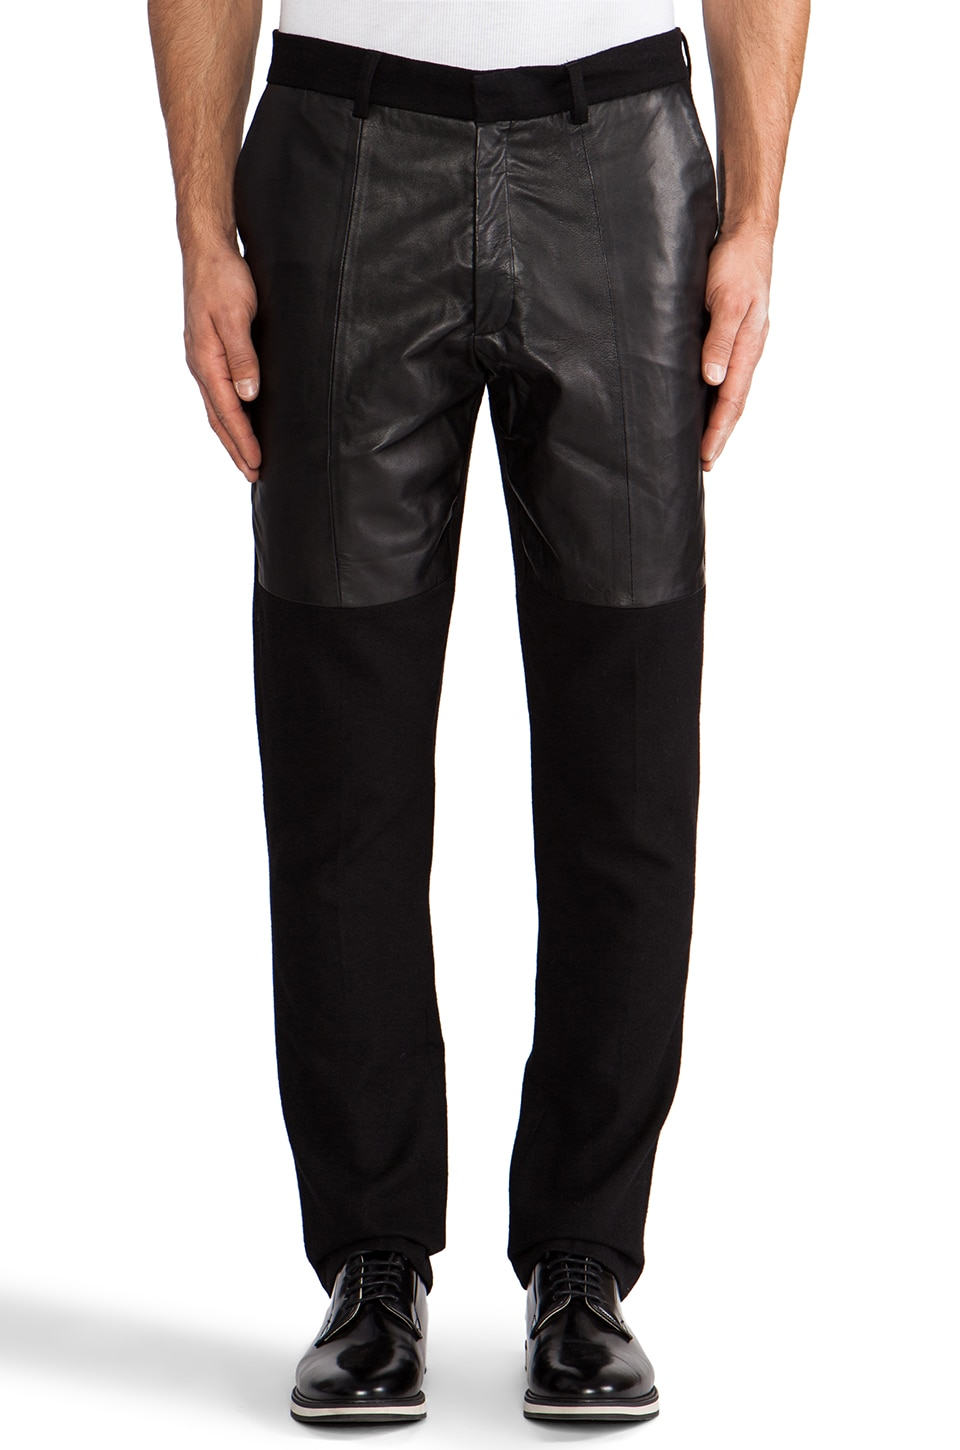 Sons of Heroes Leather Panel Trouser